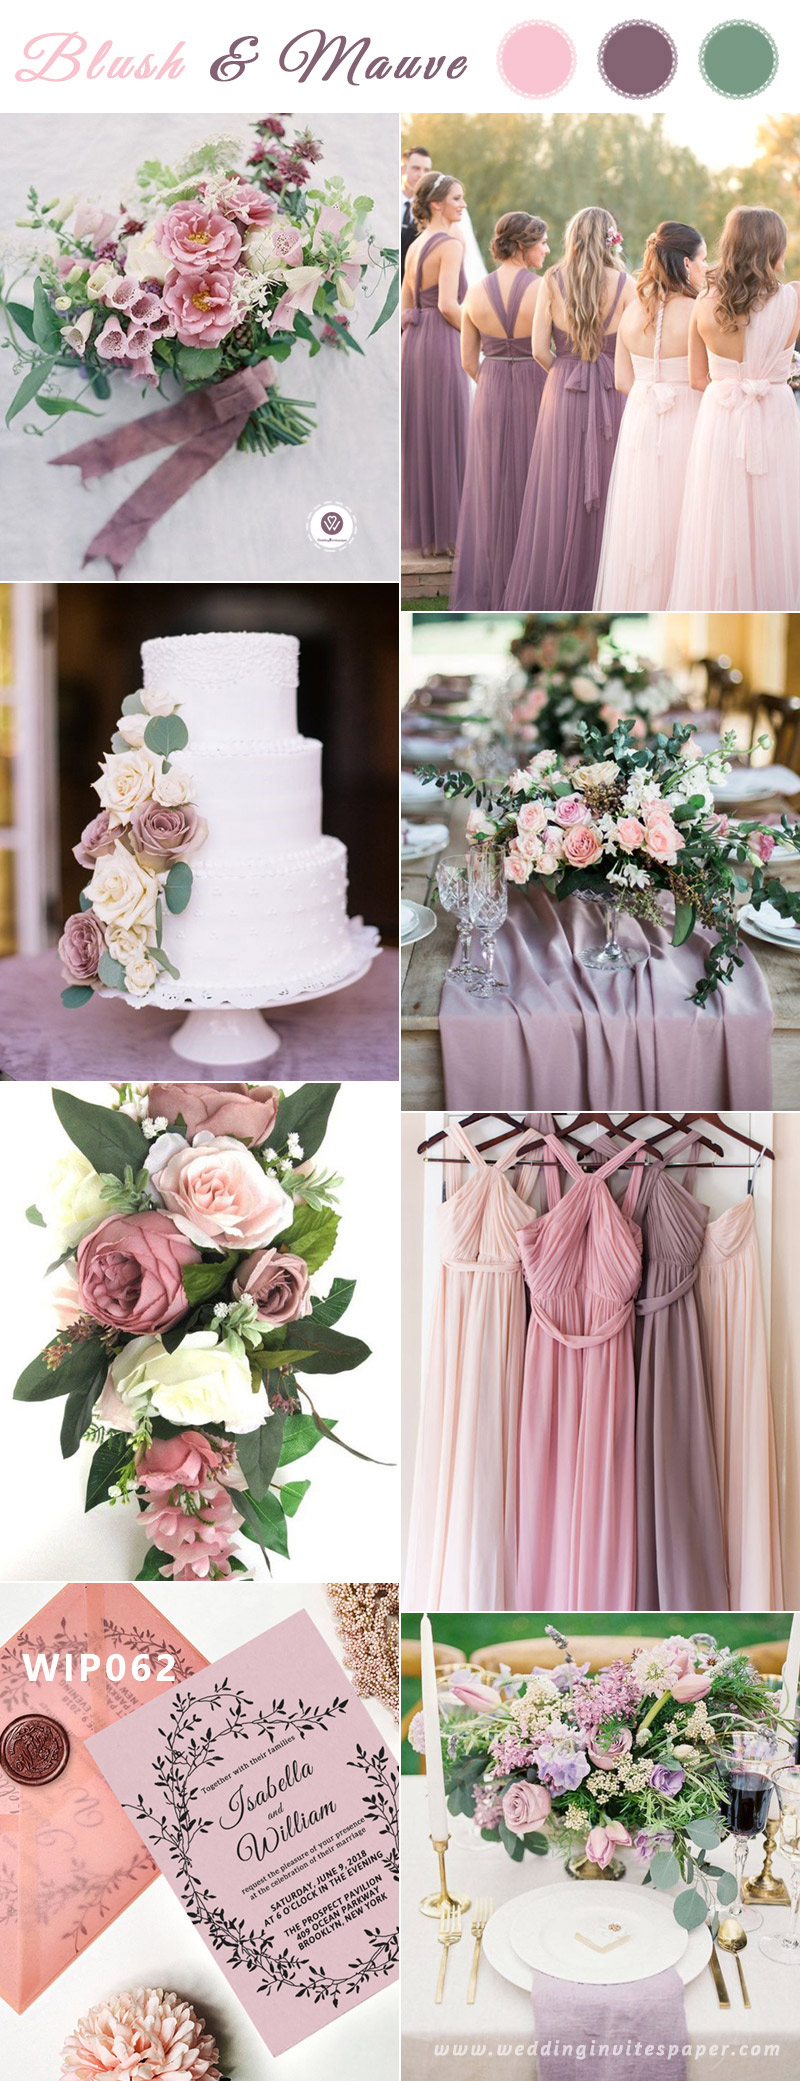 Blush-&-Mauve--,-Spring-Weddings.jpg